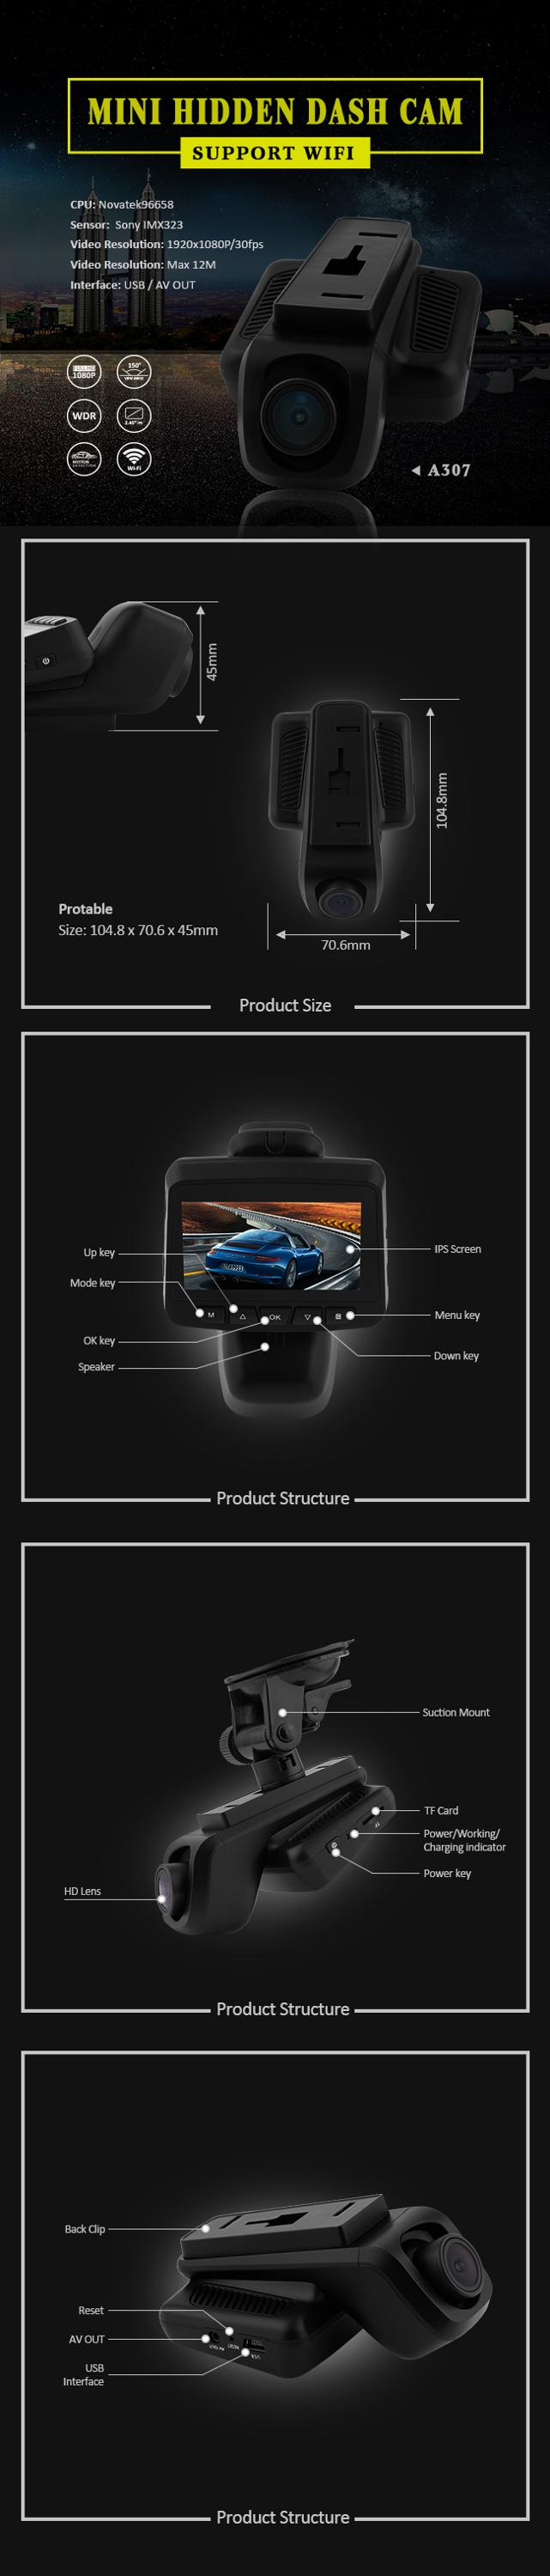 1080p user manual 2.45inch IPS mini hidden wifi GPS dash cam